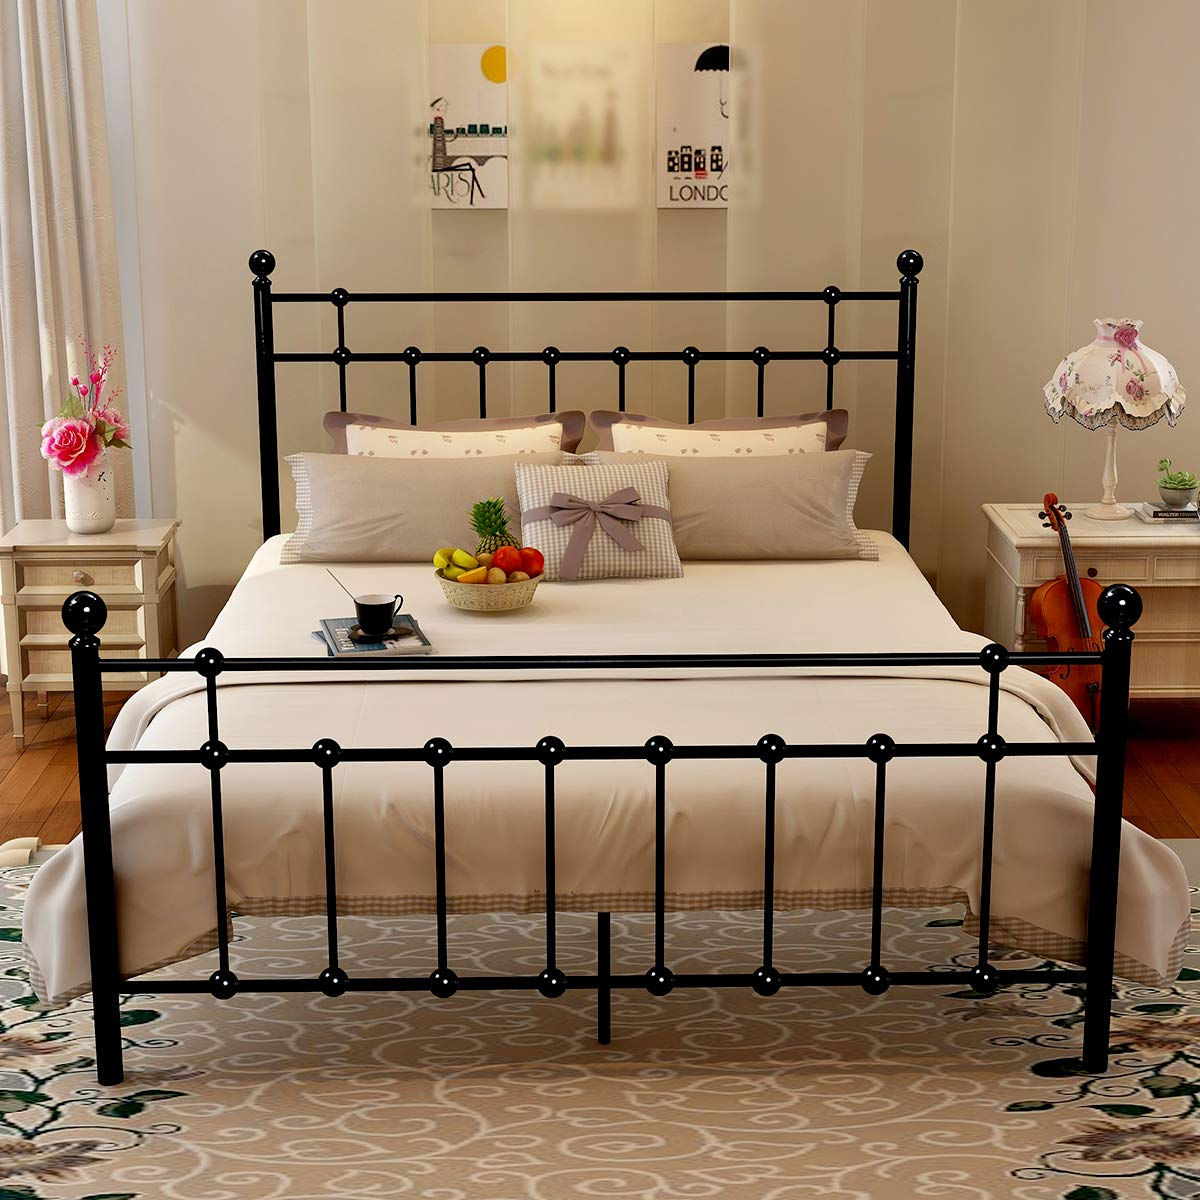 Traveller Location: Metal Queen Bed Frame Platform with Steel Headboard and  Footboard Black Iron Round Slat Mattress Foundation Modern Style No Box  Spring (Queen,